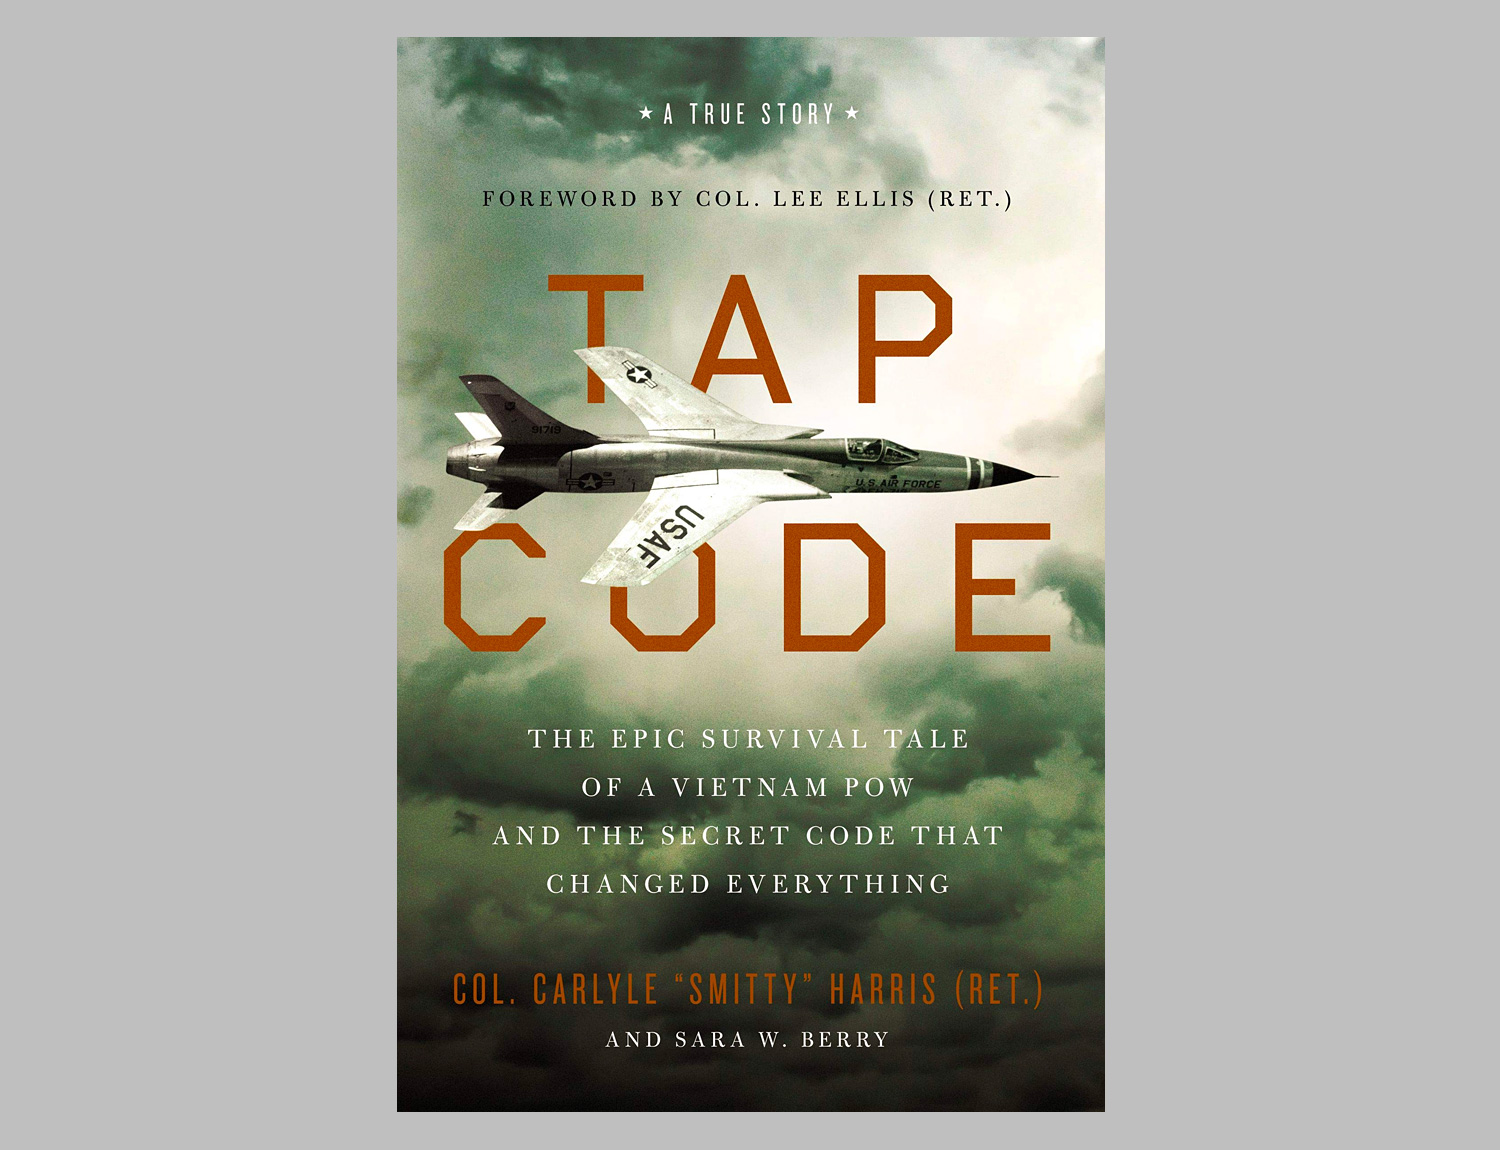 Tap Code: The Epic Survival Tale of a Vietnam POW and the Secret Code That Changed Everything at werd.com